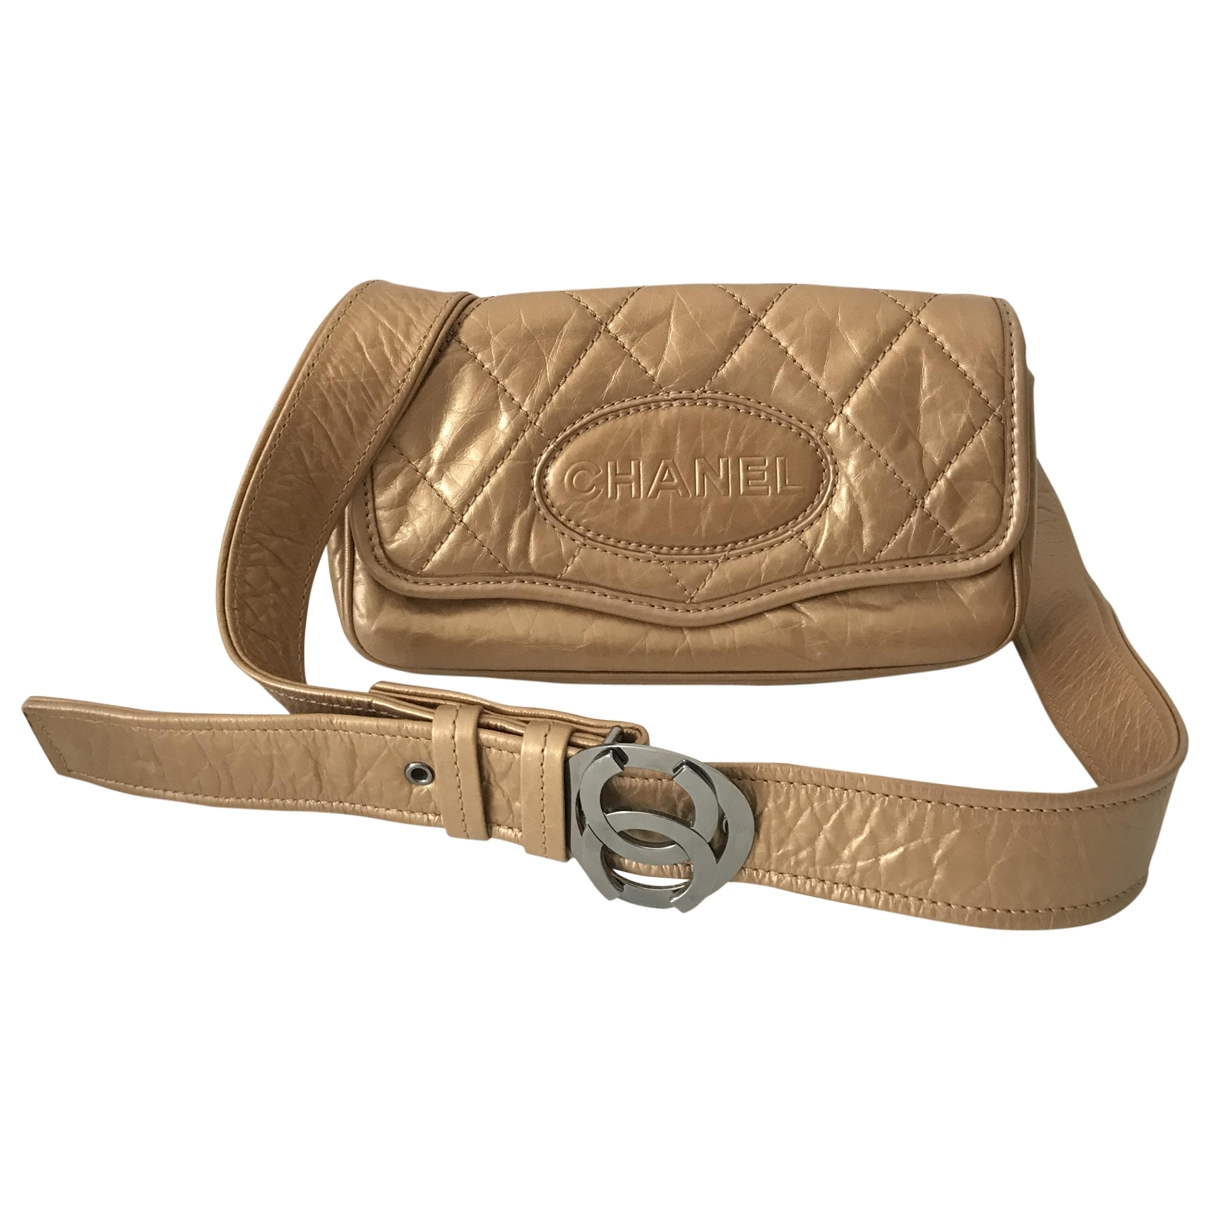 Chanel \N Gold Leather Clutch bag for Women \N